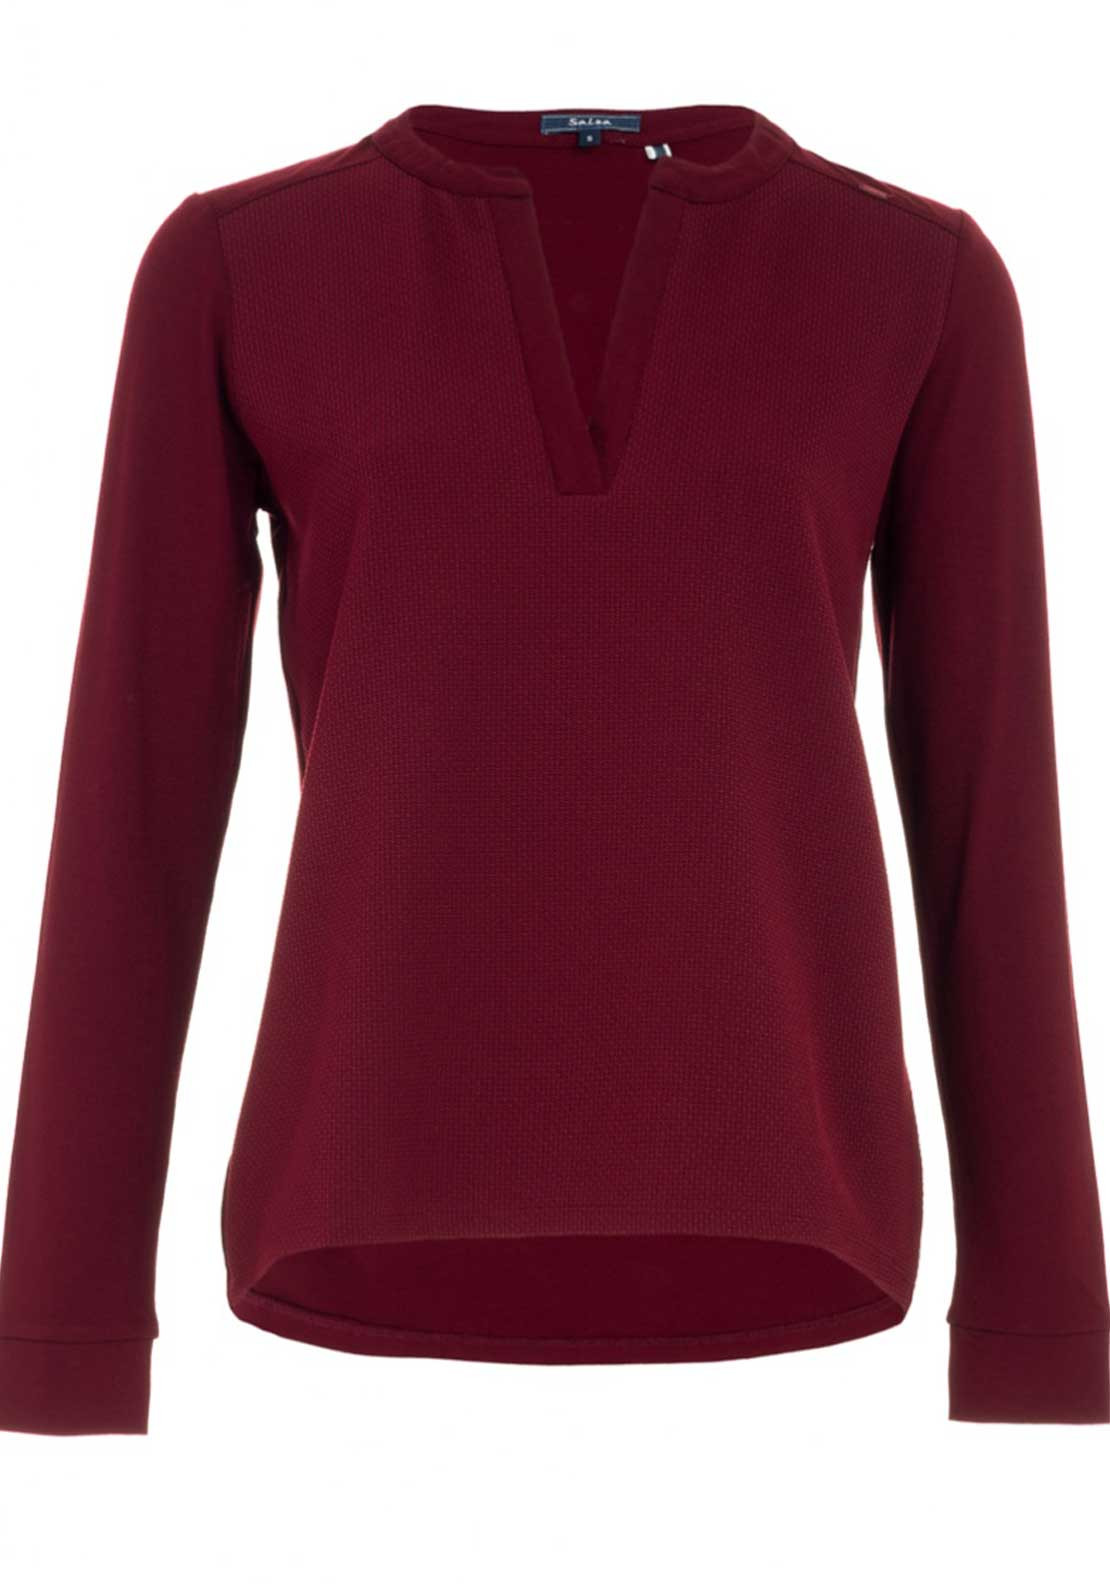 Salsa Long Sleeve Knit Top, Dark Red